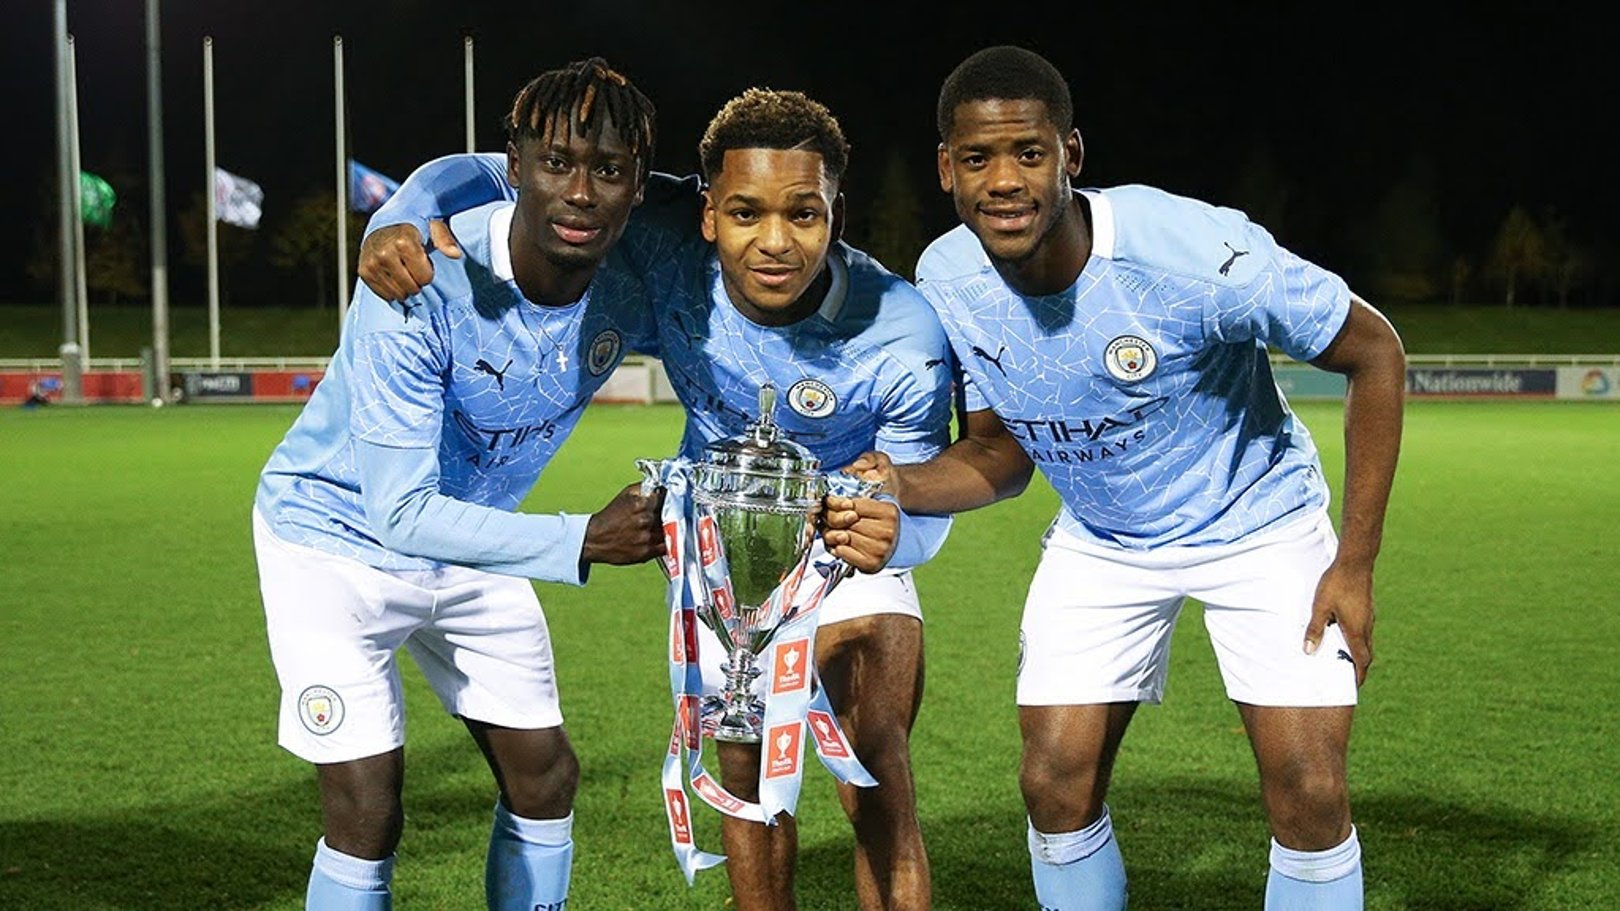 Wilcox: FA Youth Cup success a proud moment for the Academy